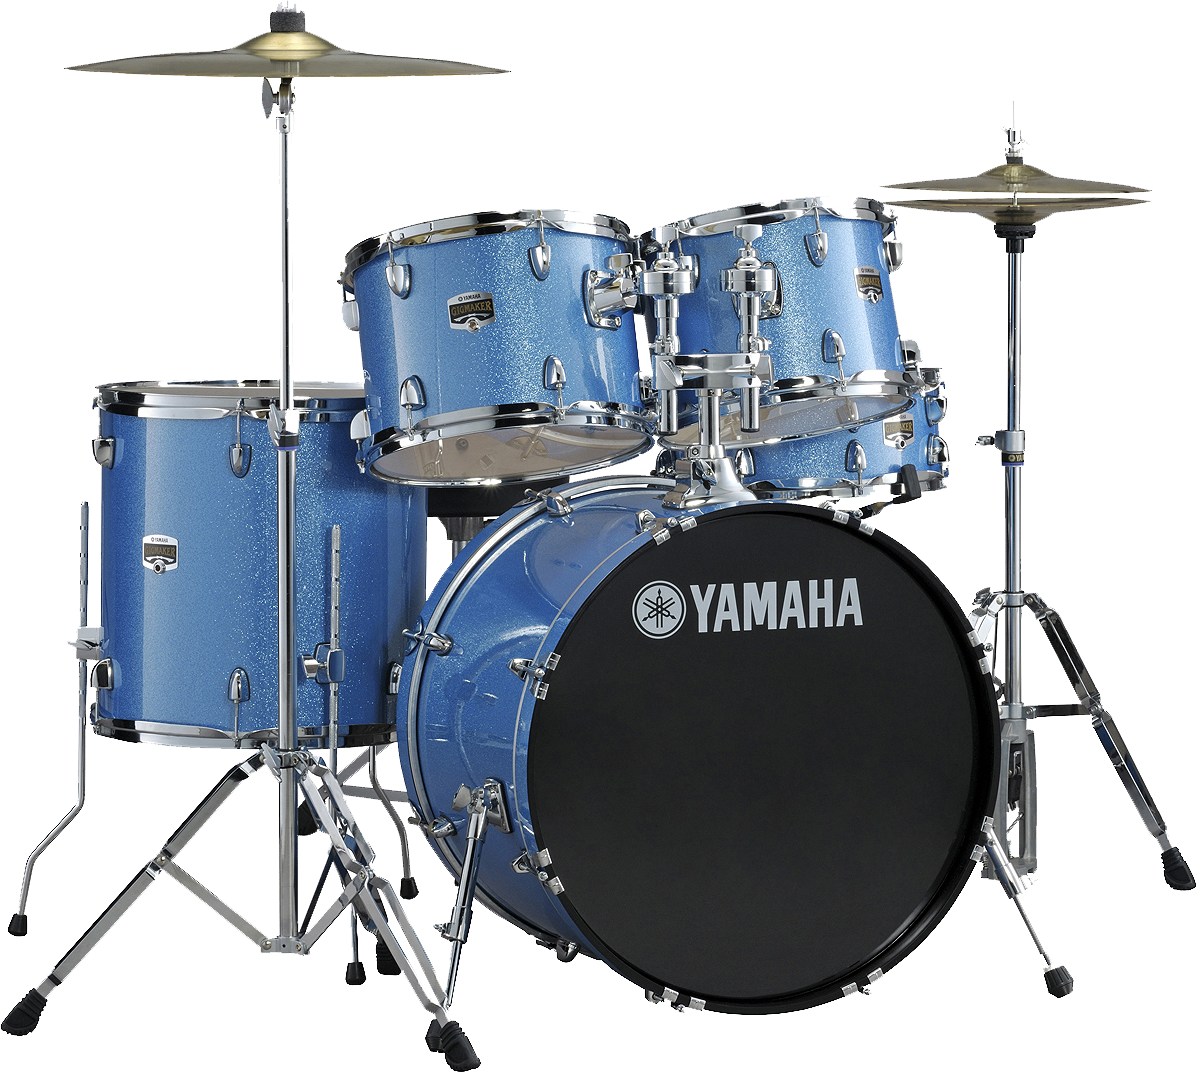 Hd drums png. Drum in high resolution